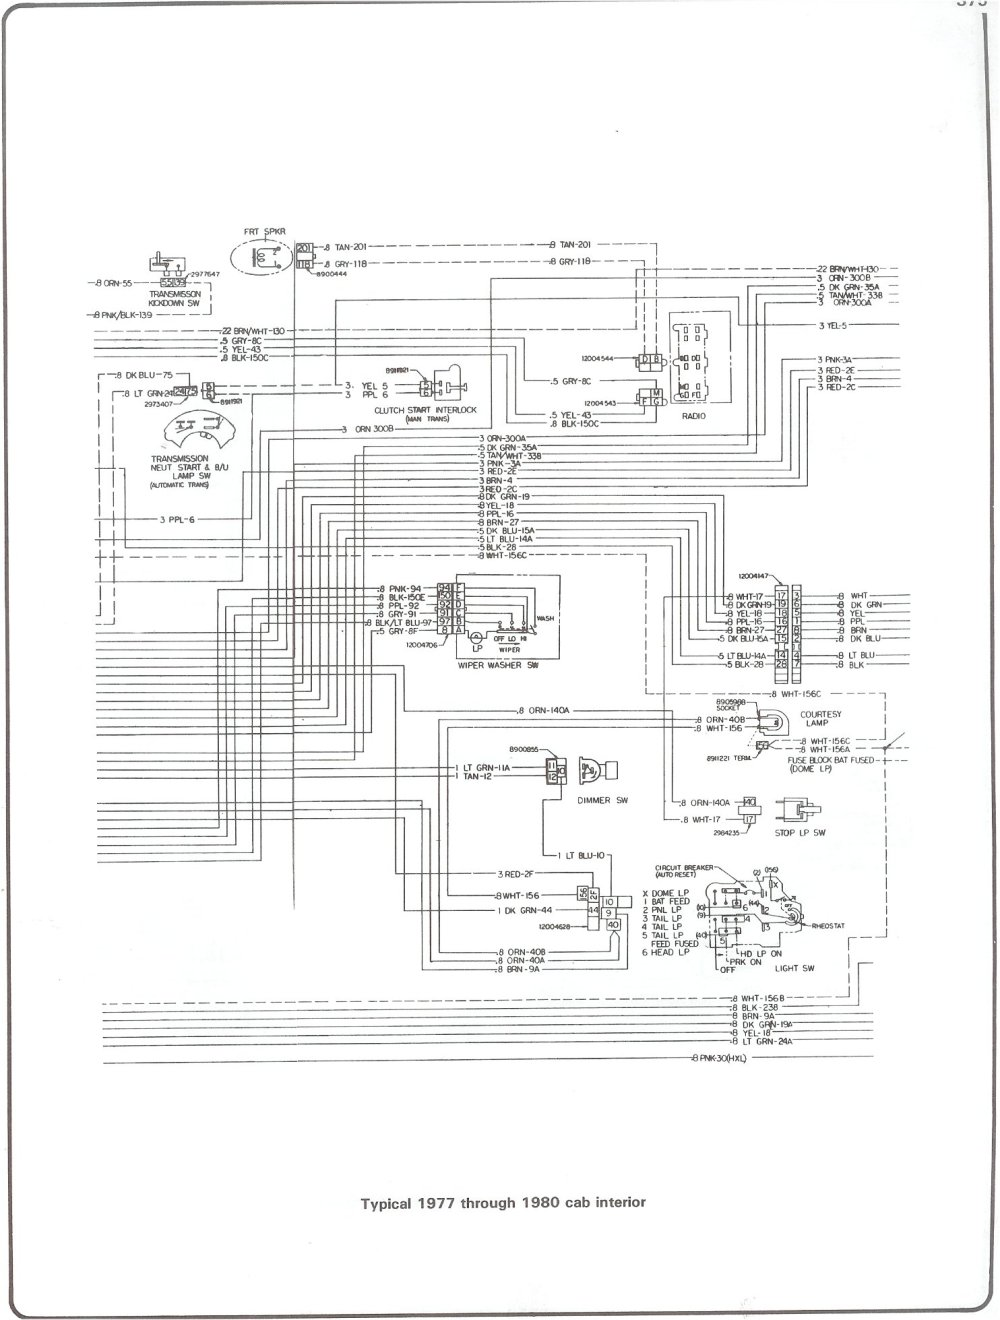 medium resolution of 78 gmc wiring harness diagram wiring schematics diagram rh mychampagnedaze com 1984 chevy 454 p30 chassis